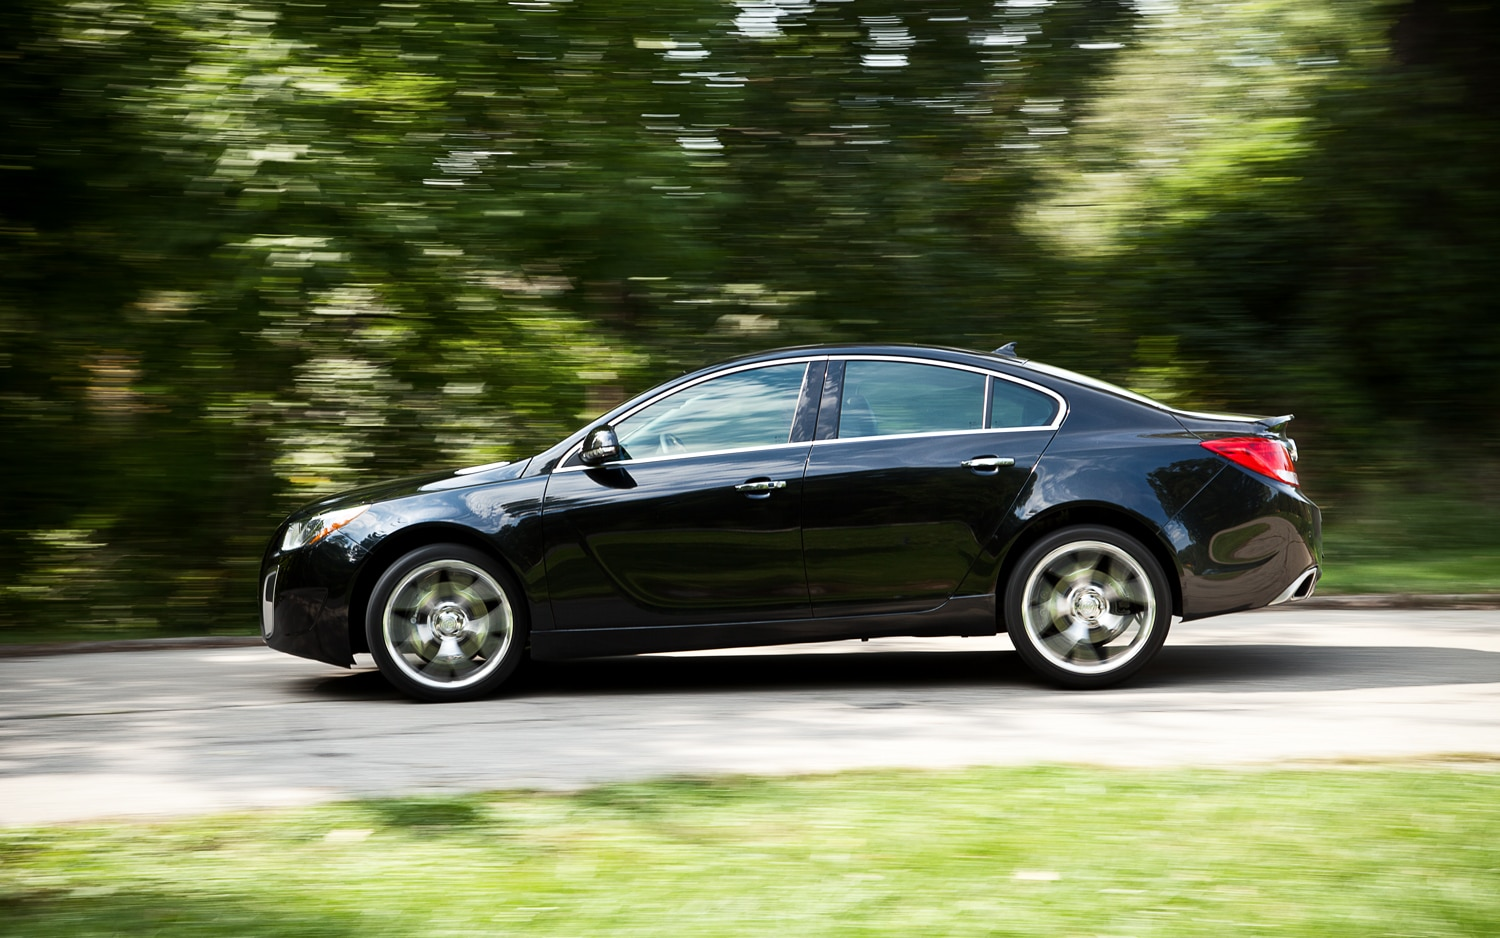 2012 Buick Regal GS Left Side View